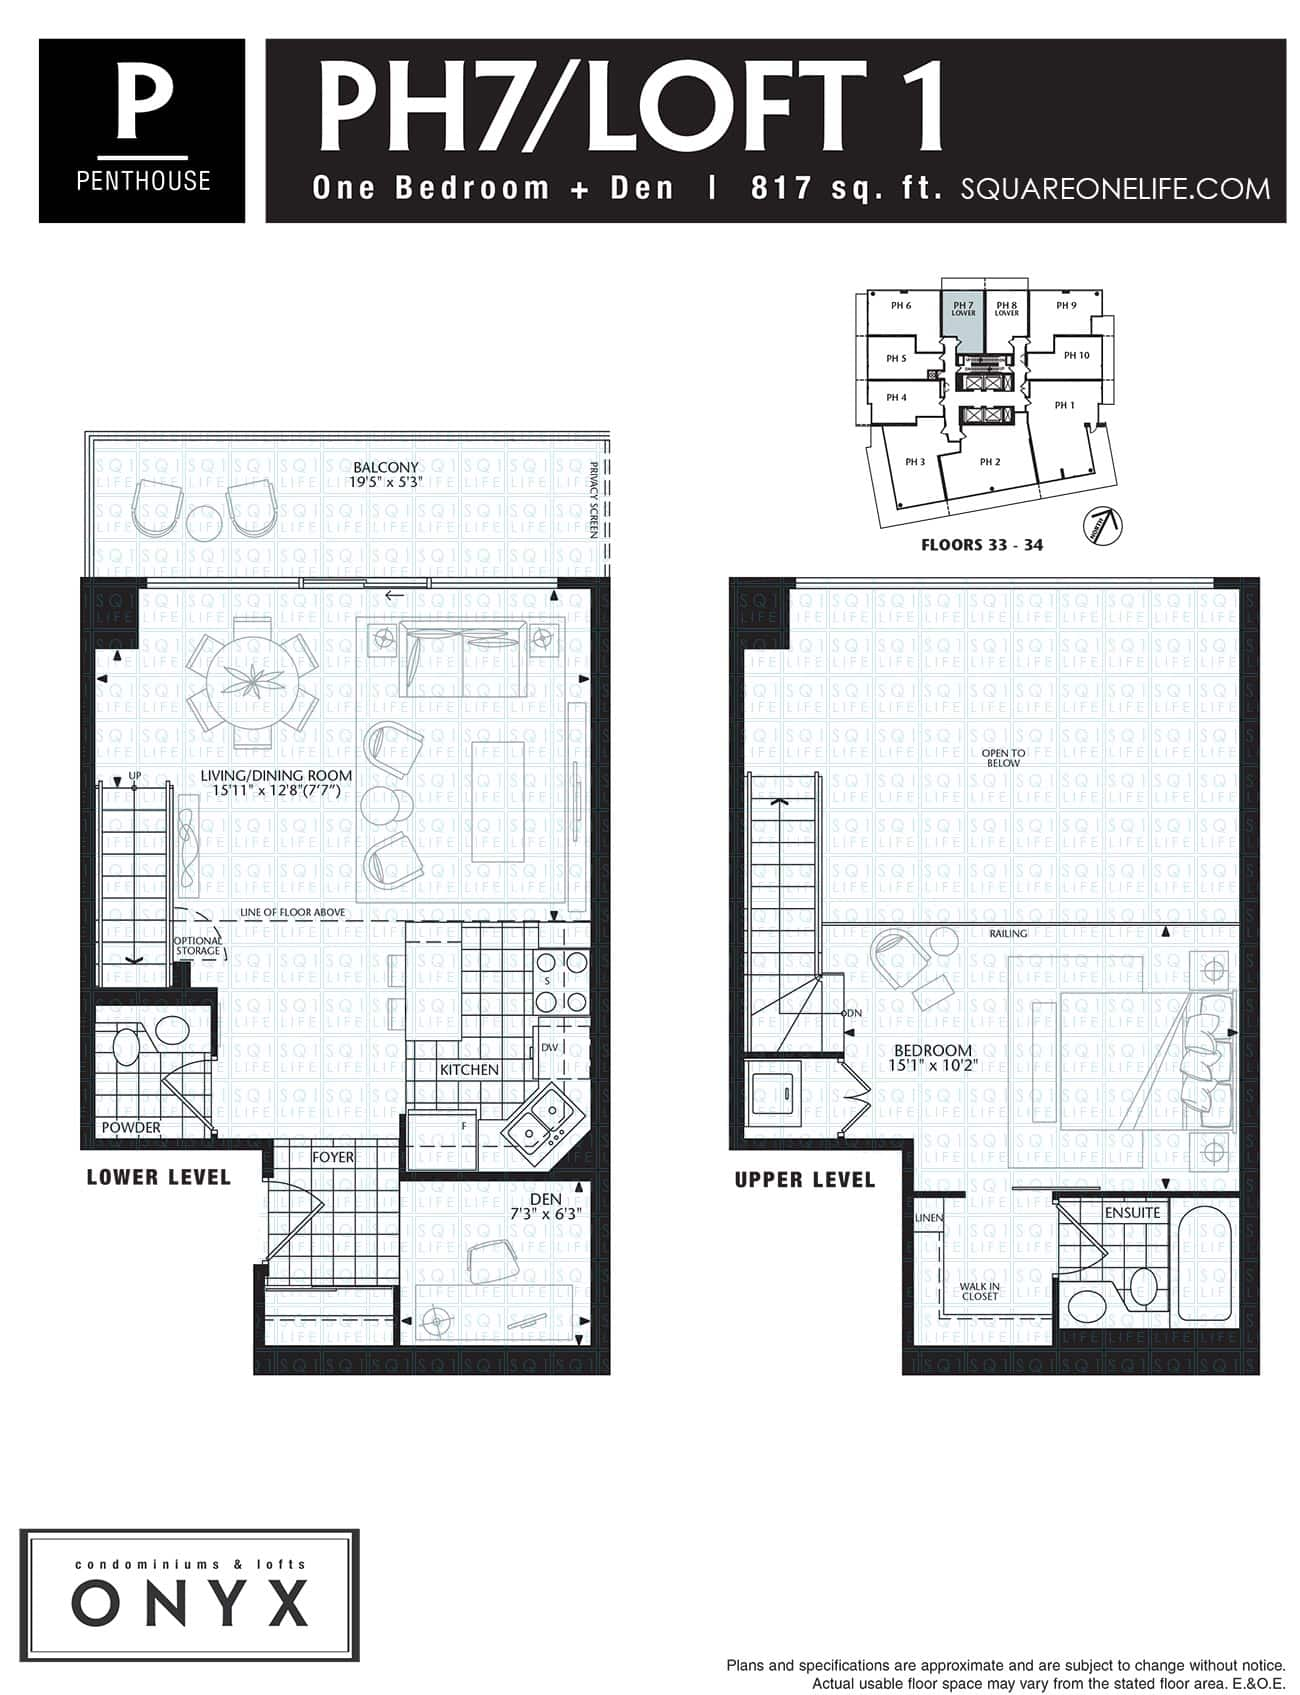 223-Webb-Dr-Onyx-Condo-Floorplan-PH7-2-Bed-1-Den onyx condo Onyx Condo 223 Webb Dr Onyx Condo Floorplan PH7 2 Bed 1 Den